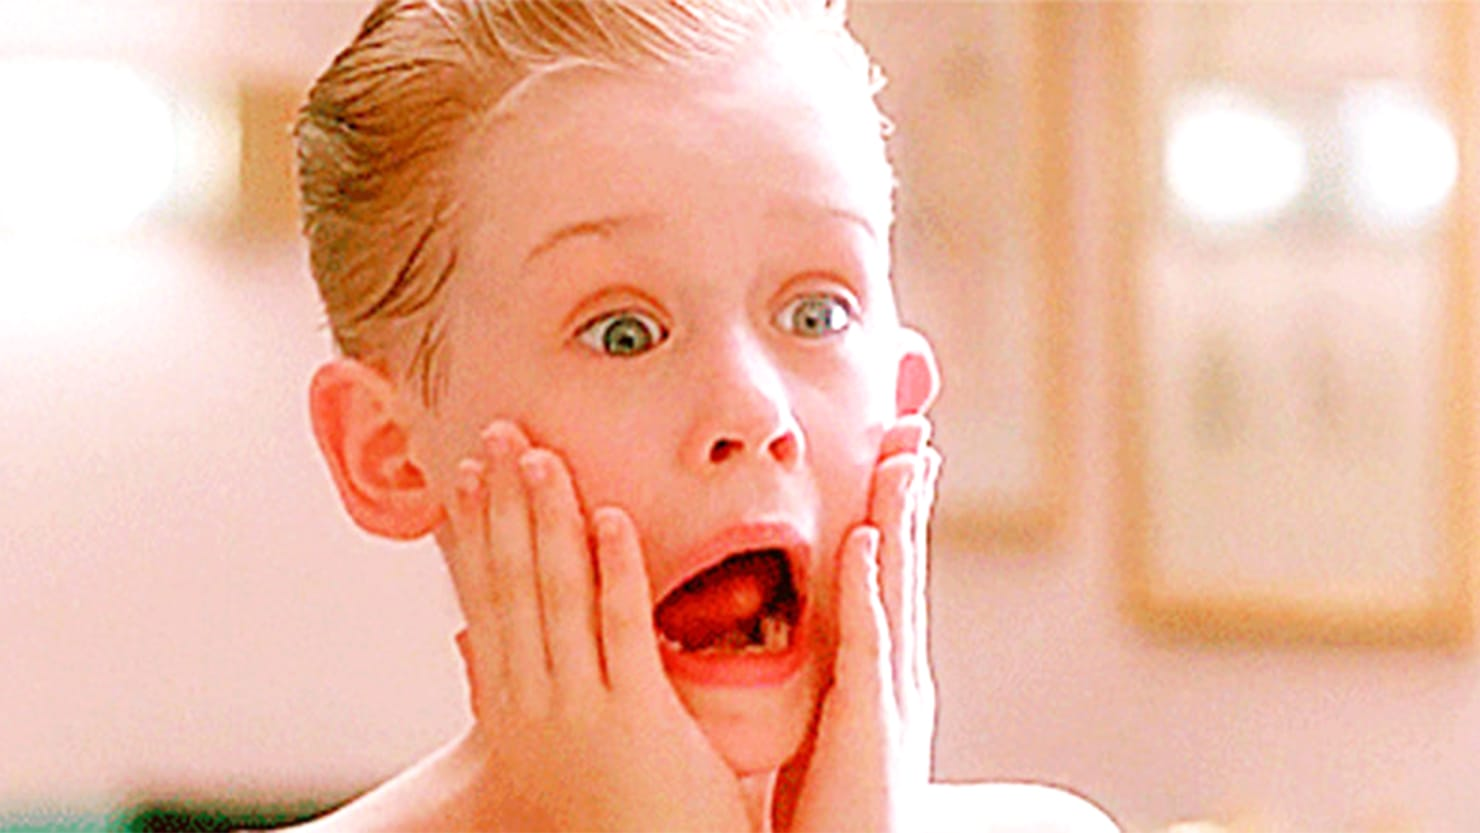 'Home Alone' Is So Much Better if Kevin McCallister is Dead